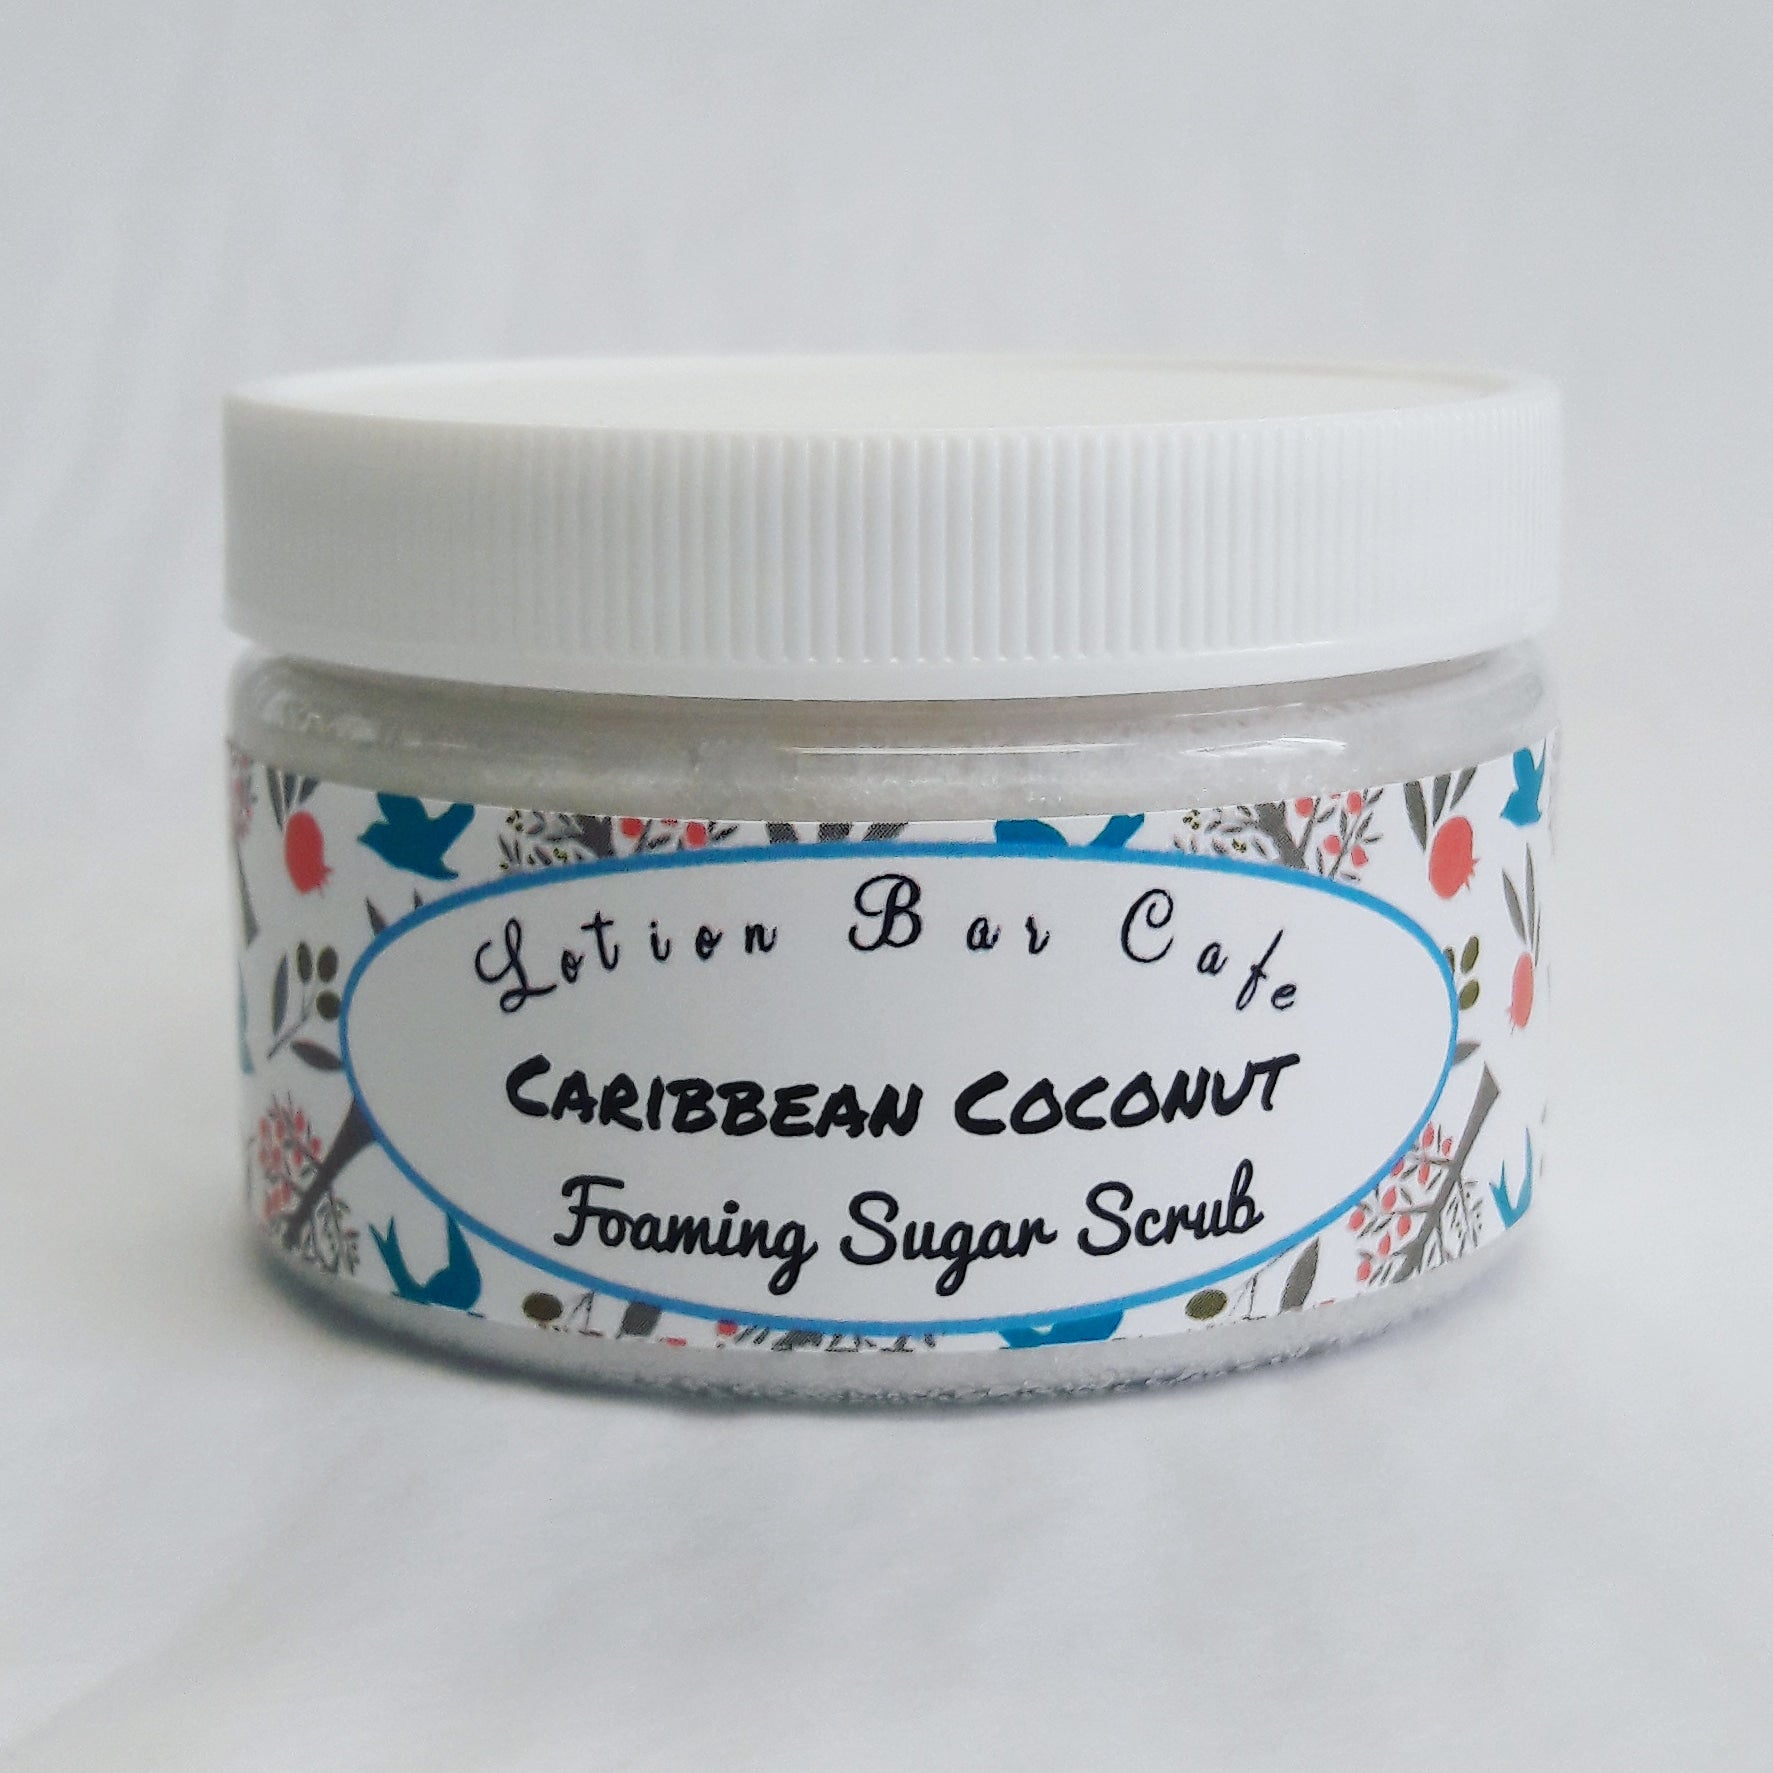 Caribbean Coconut Foaming Sugar Scrub